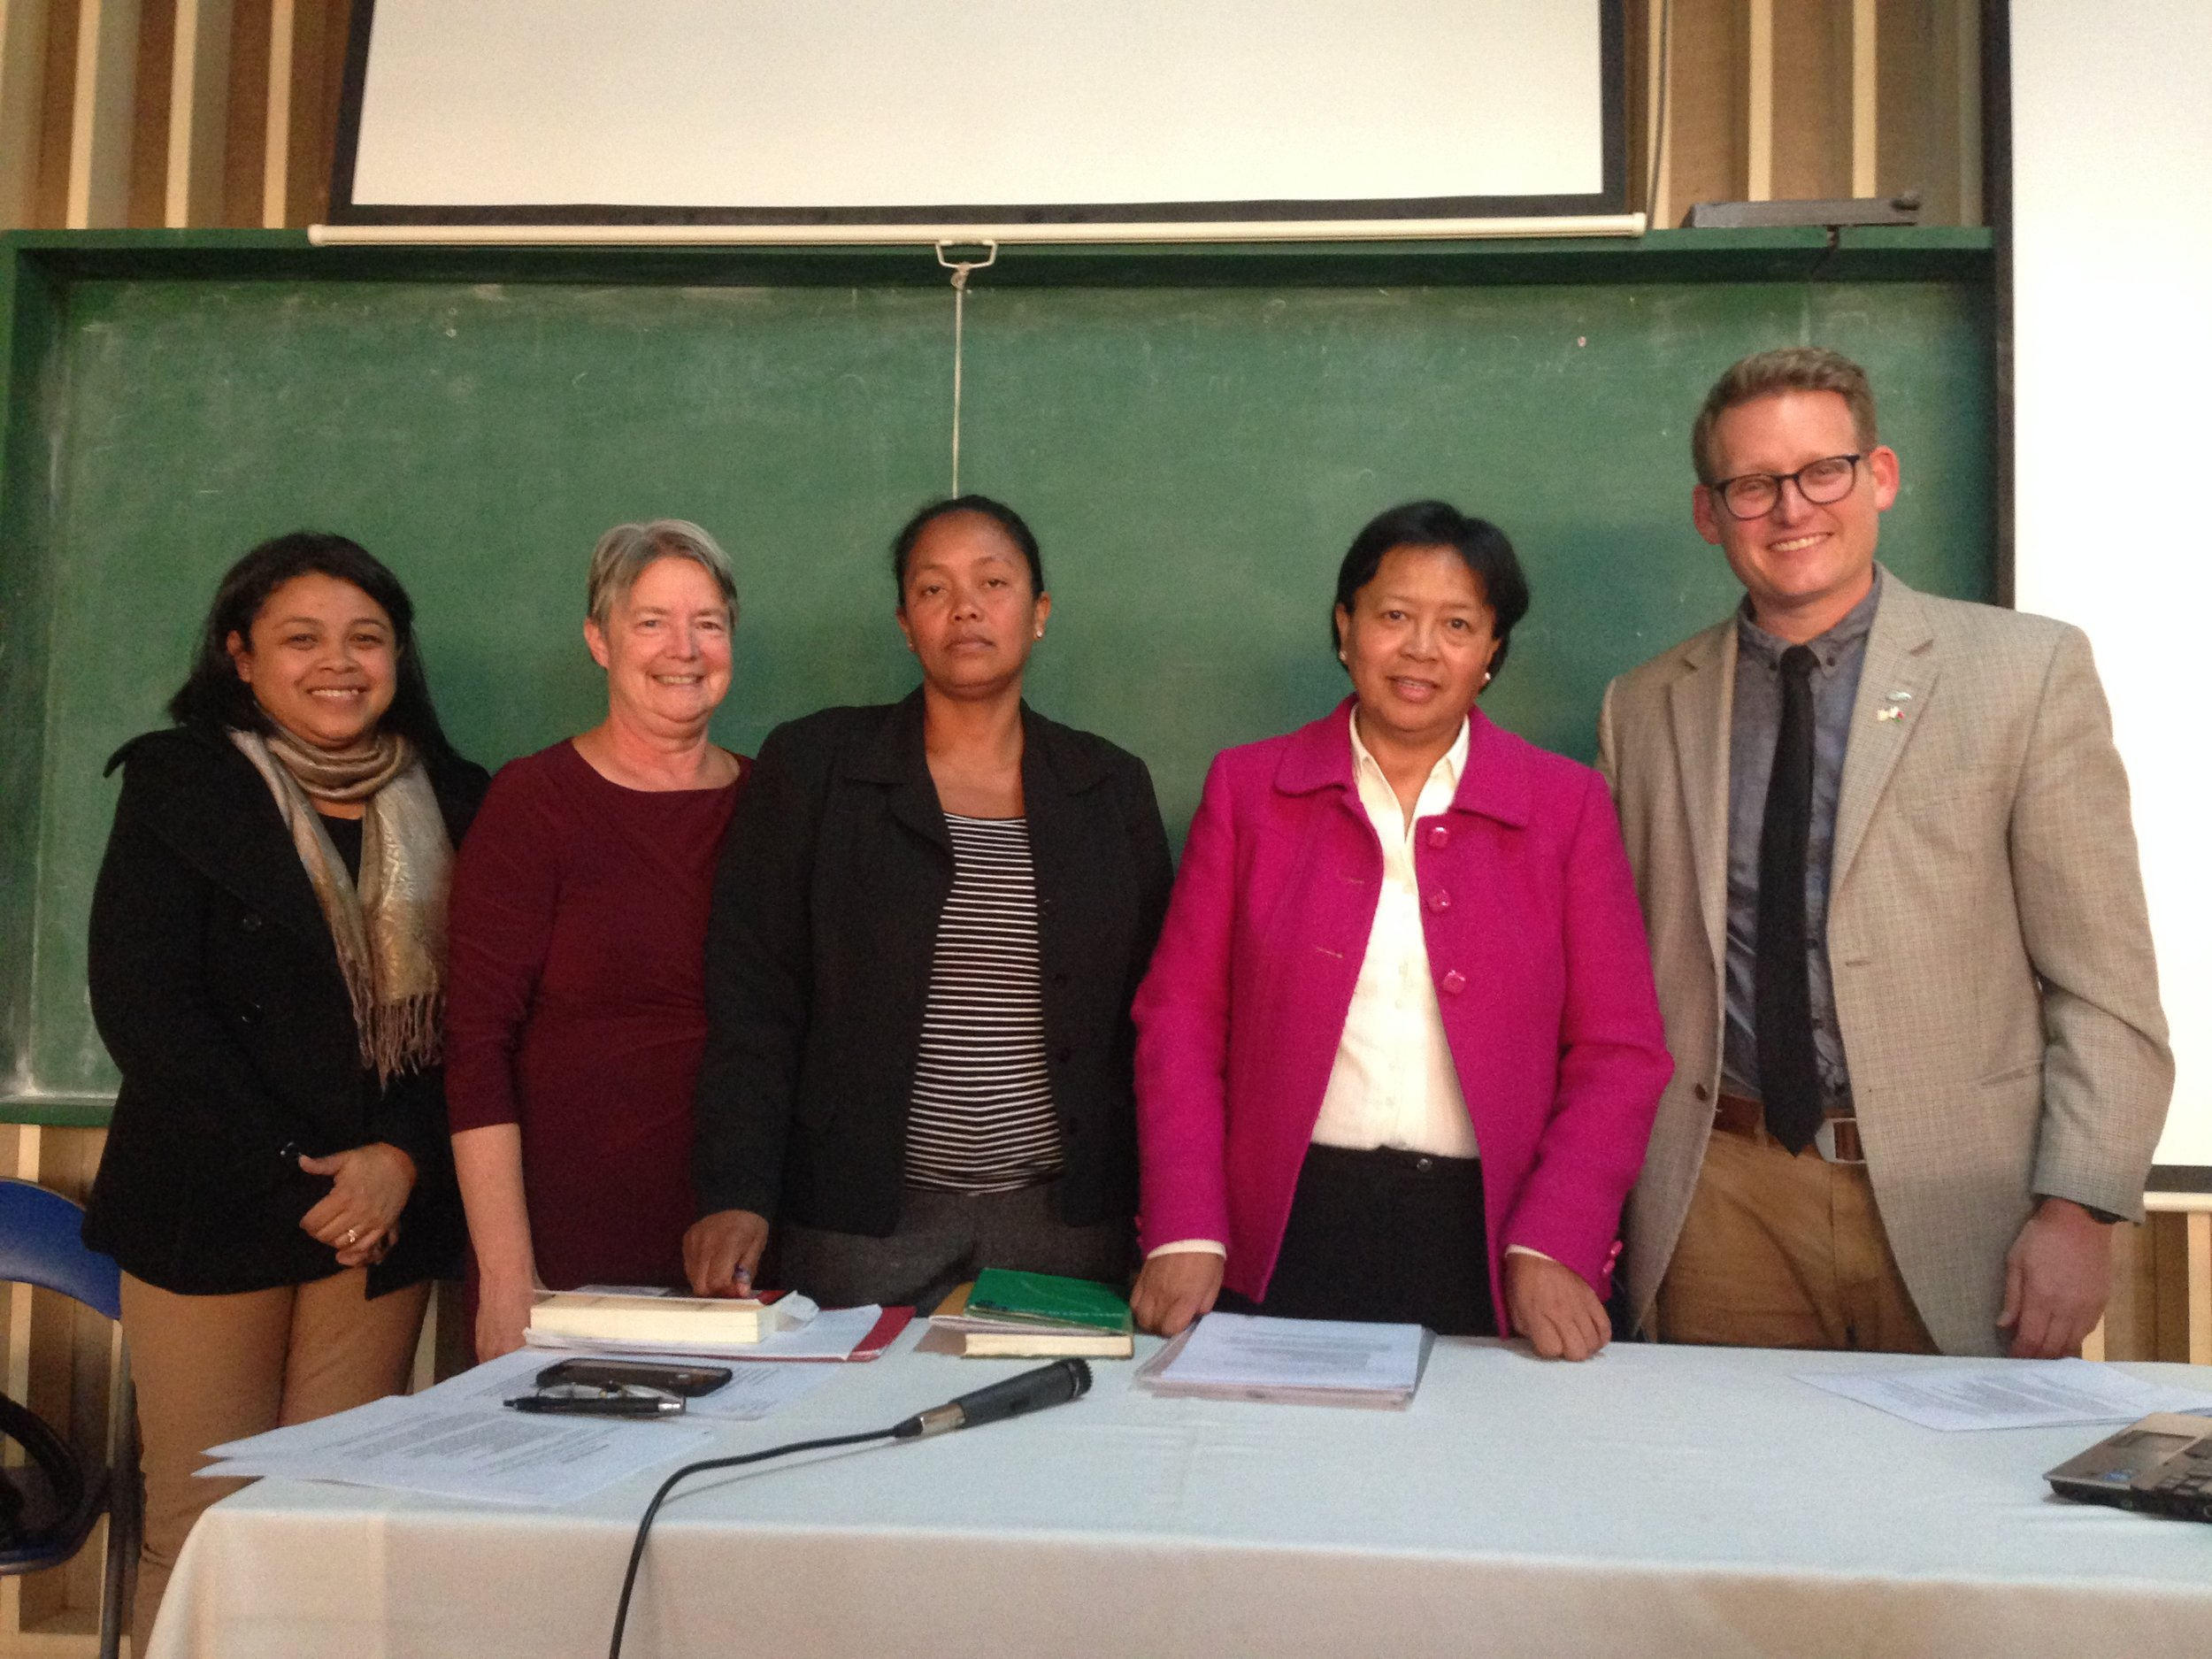 The presenters from the half-day of research event for Anglophone Studies